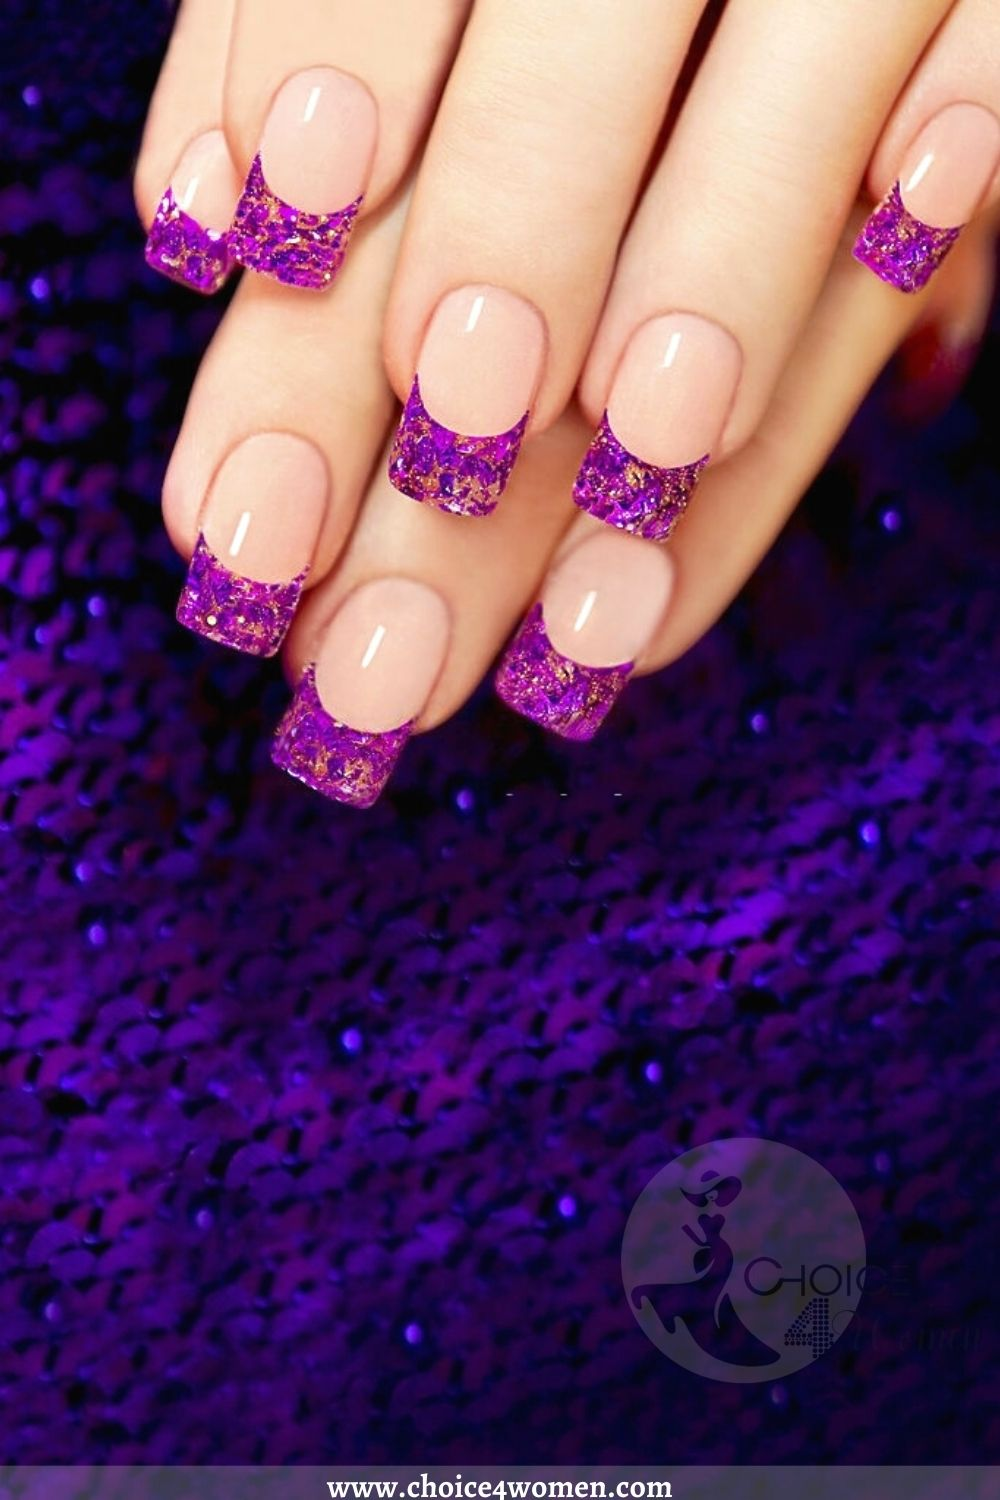 Simple Nail Designs in pink and purple